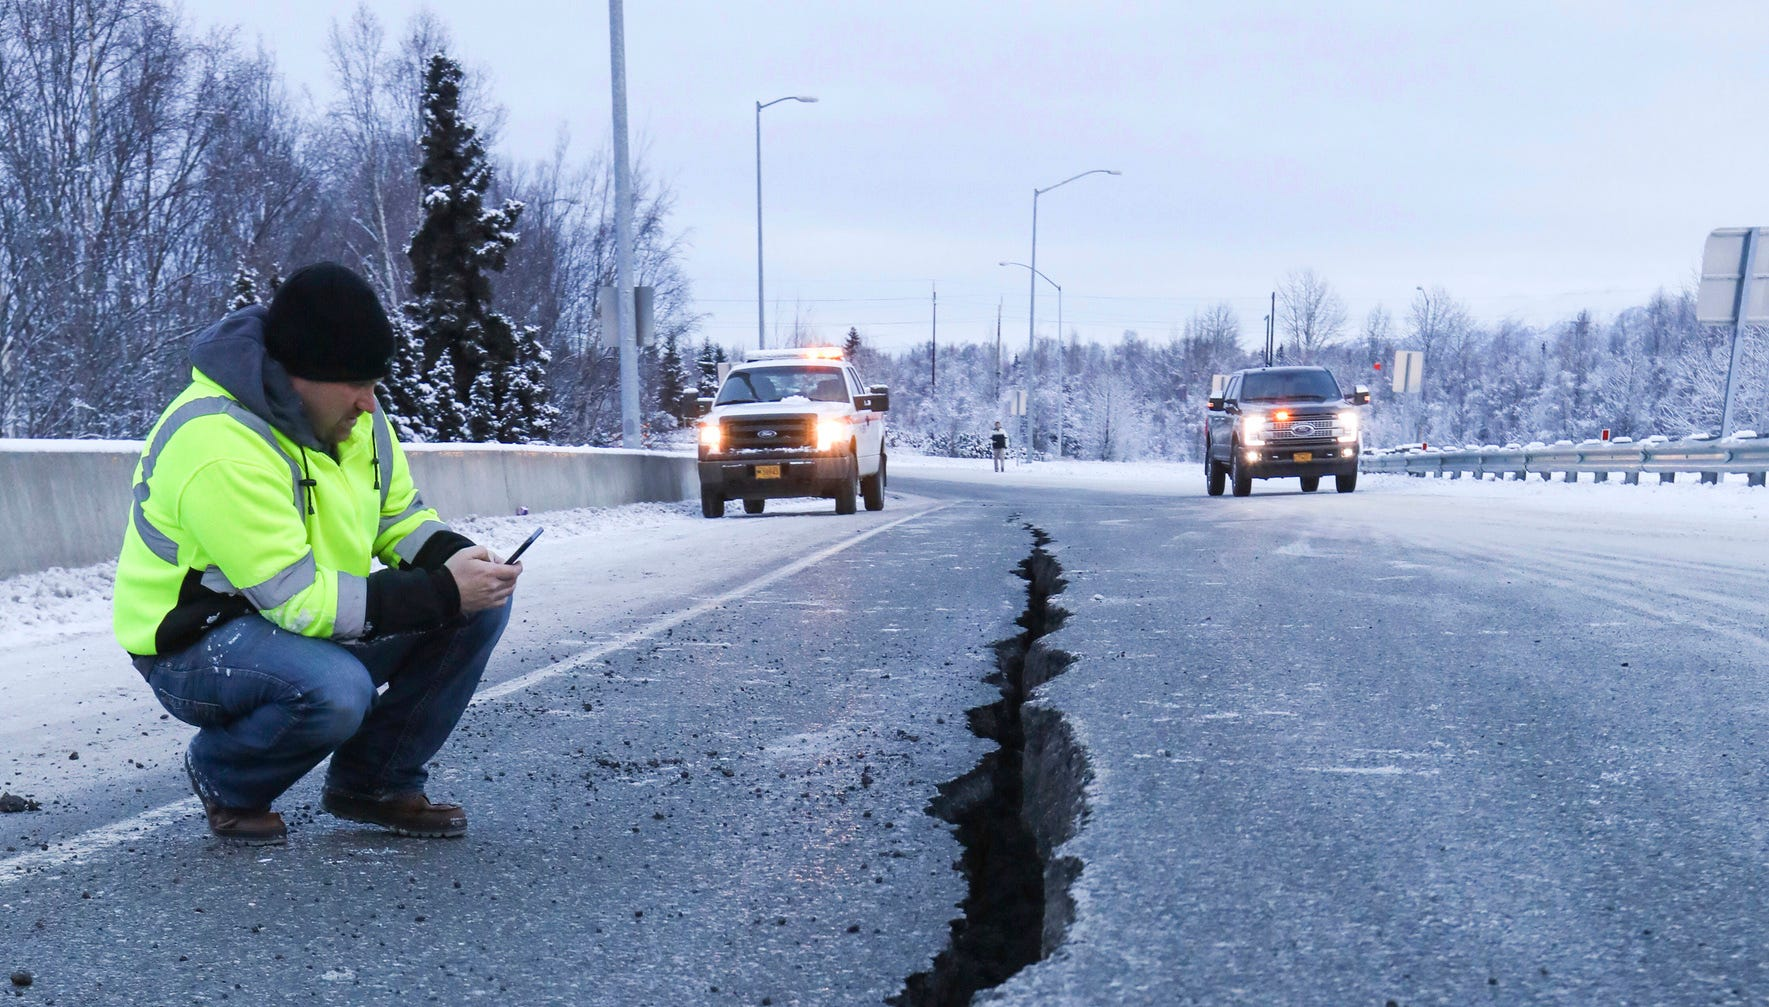 Marty Thurman with Granite construction inspects a crack in the road at the International Airport Road offramp on southbound Minnesota Blvd., in Anchorage, Alaska, Friday, Nov. 30, 2018. A state official says Ted Stevens Anchorage International Airport is open and operating at reduced capacity with delayed flights following back-to-back earthquakes.